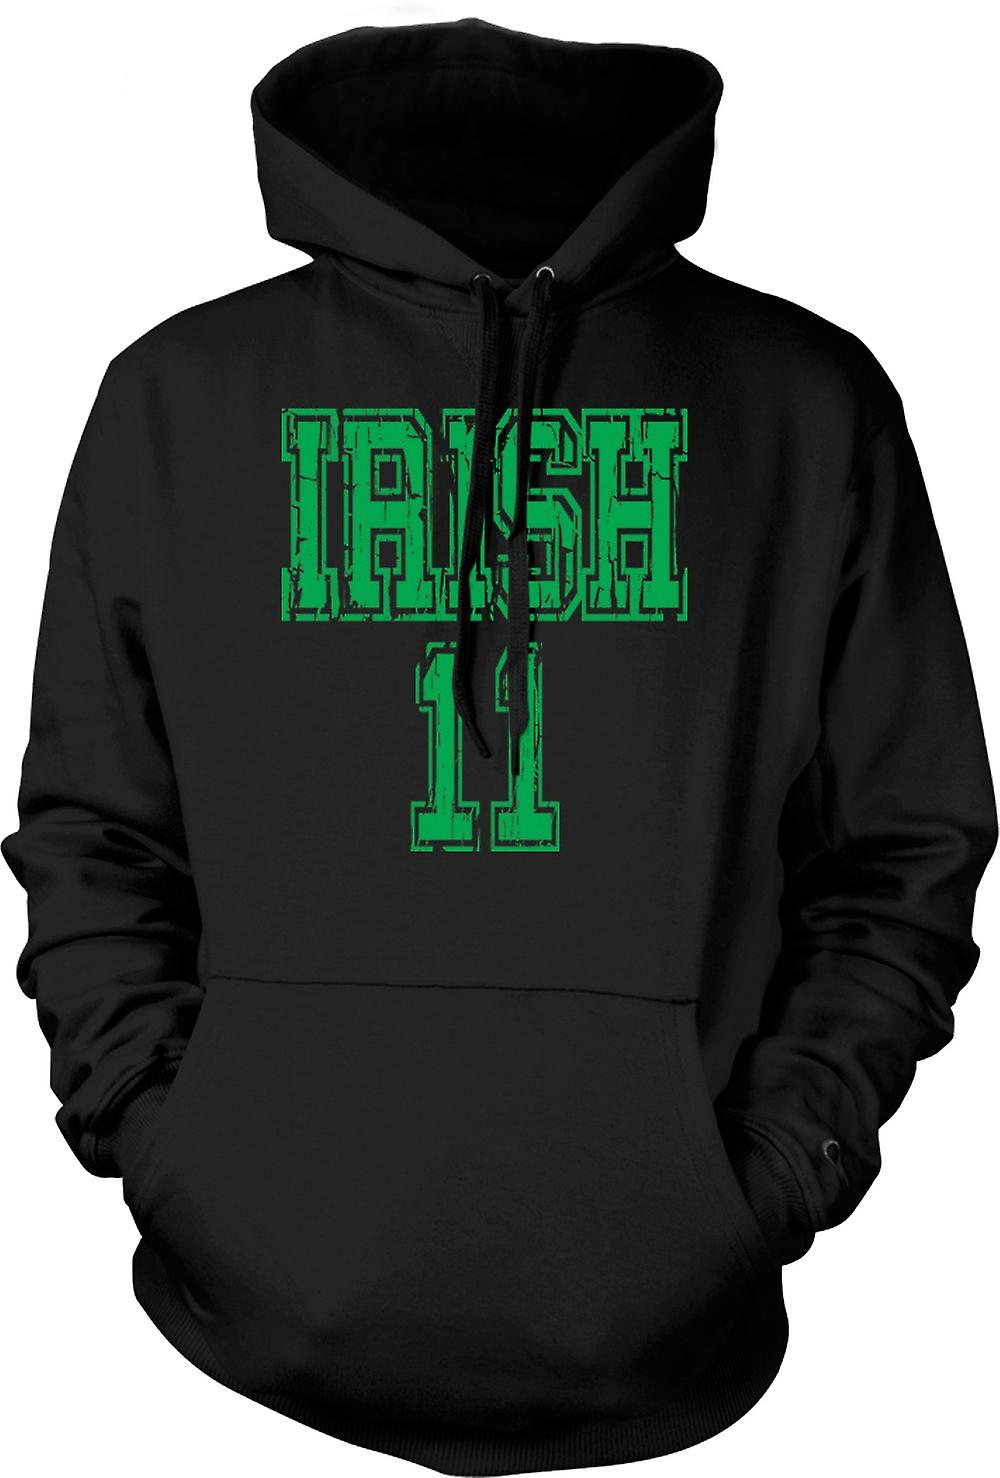 Mens Hoodie - St Patricks Day Irish 11 - Funny